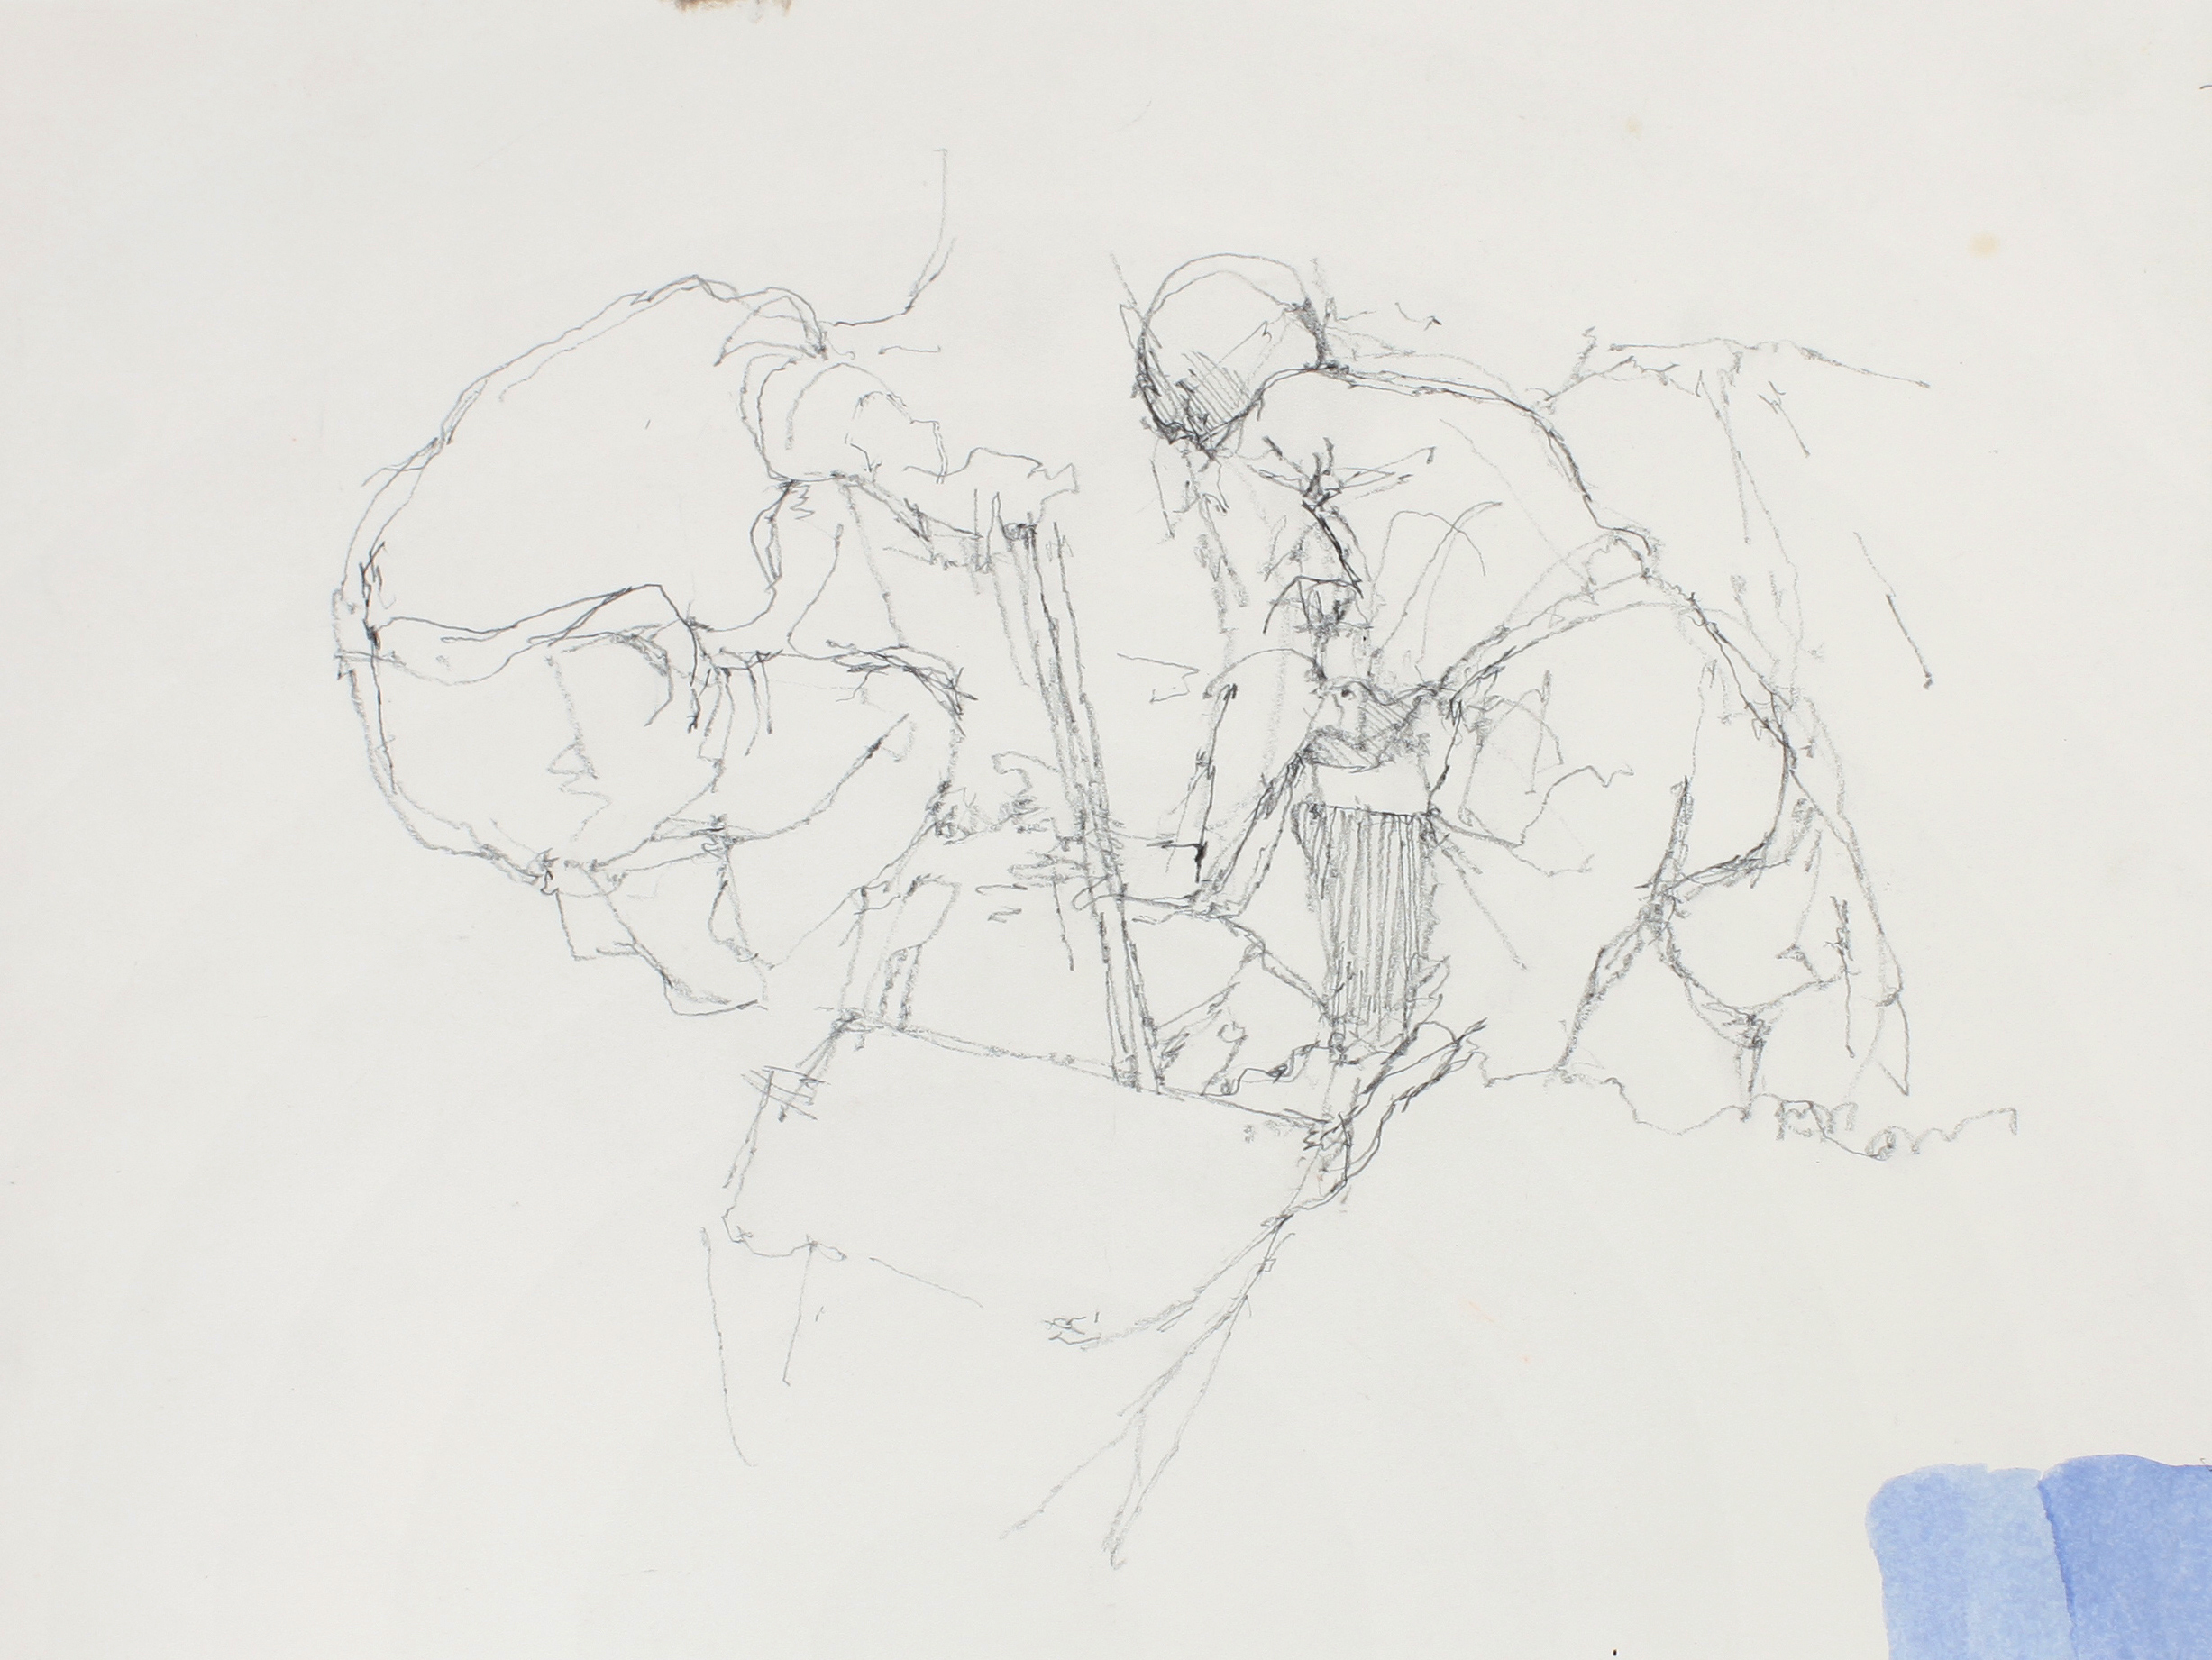 1980s_Drawing_of_Diggers_after-the_Painting_Etching_&_Painting_pencil_on_paper_11x15in_WPF606.jpg